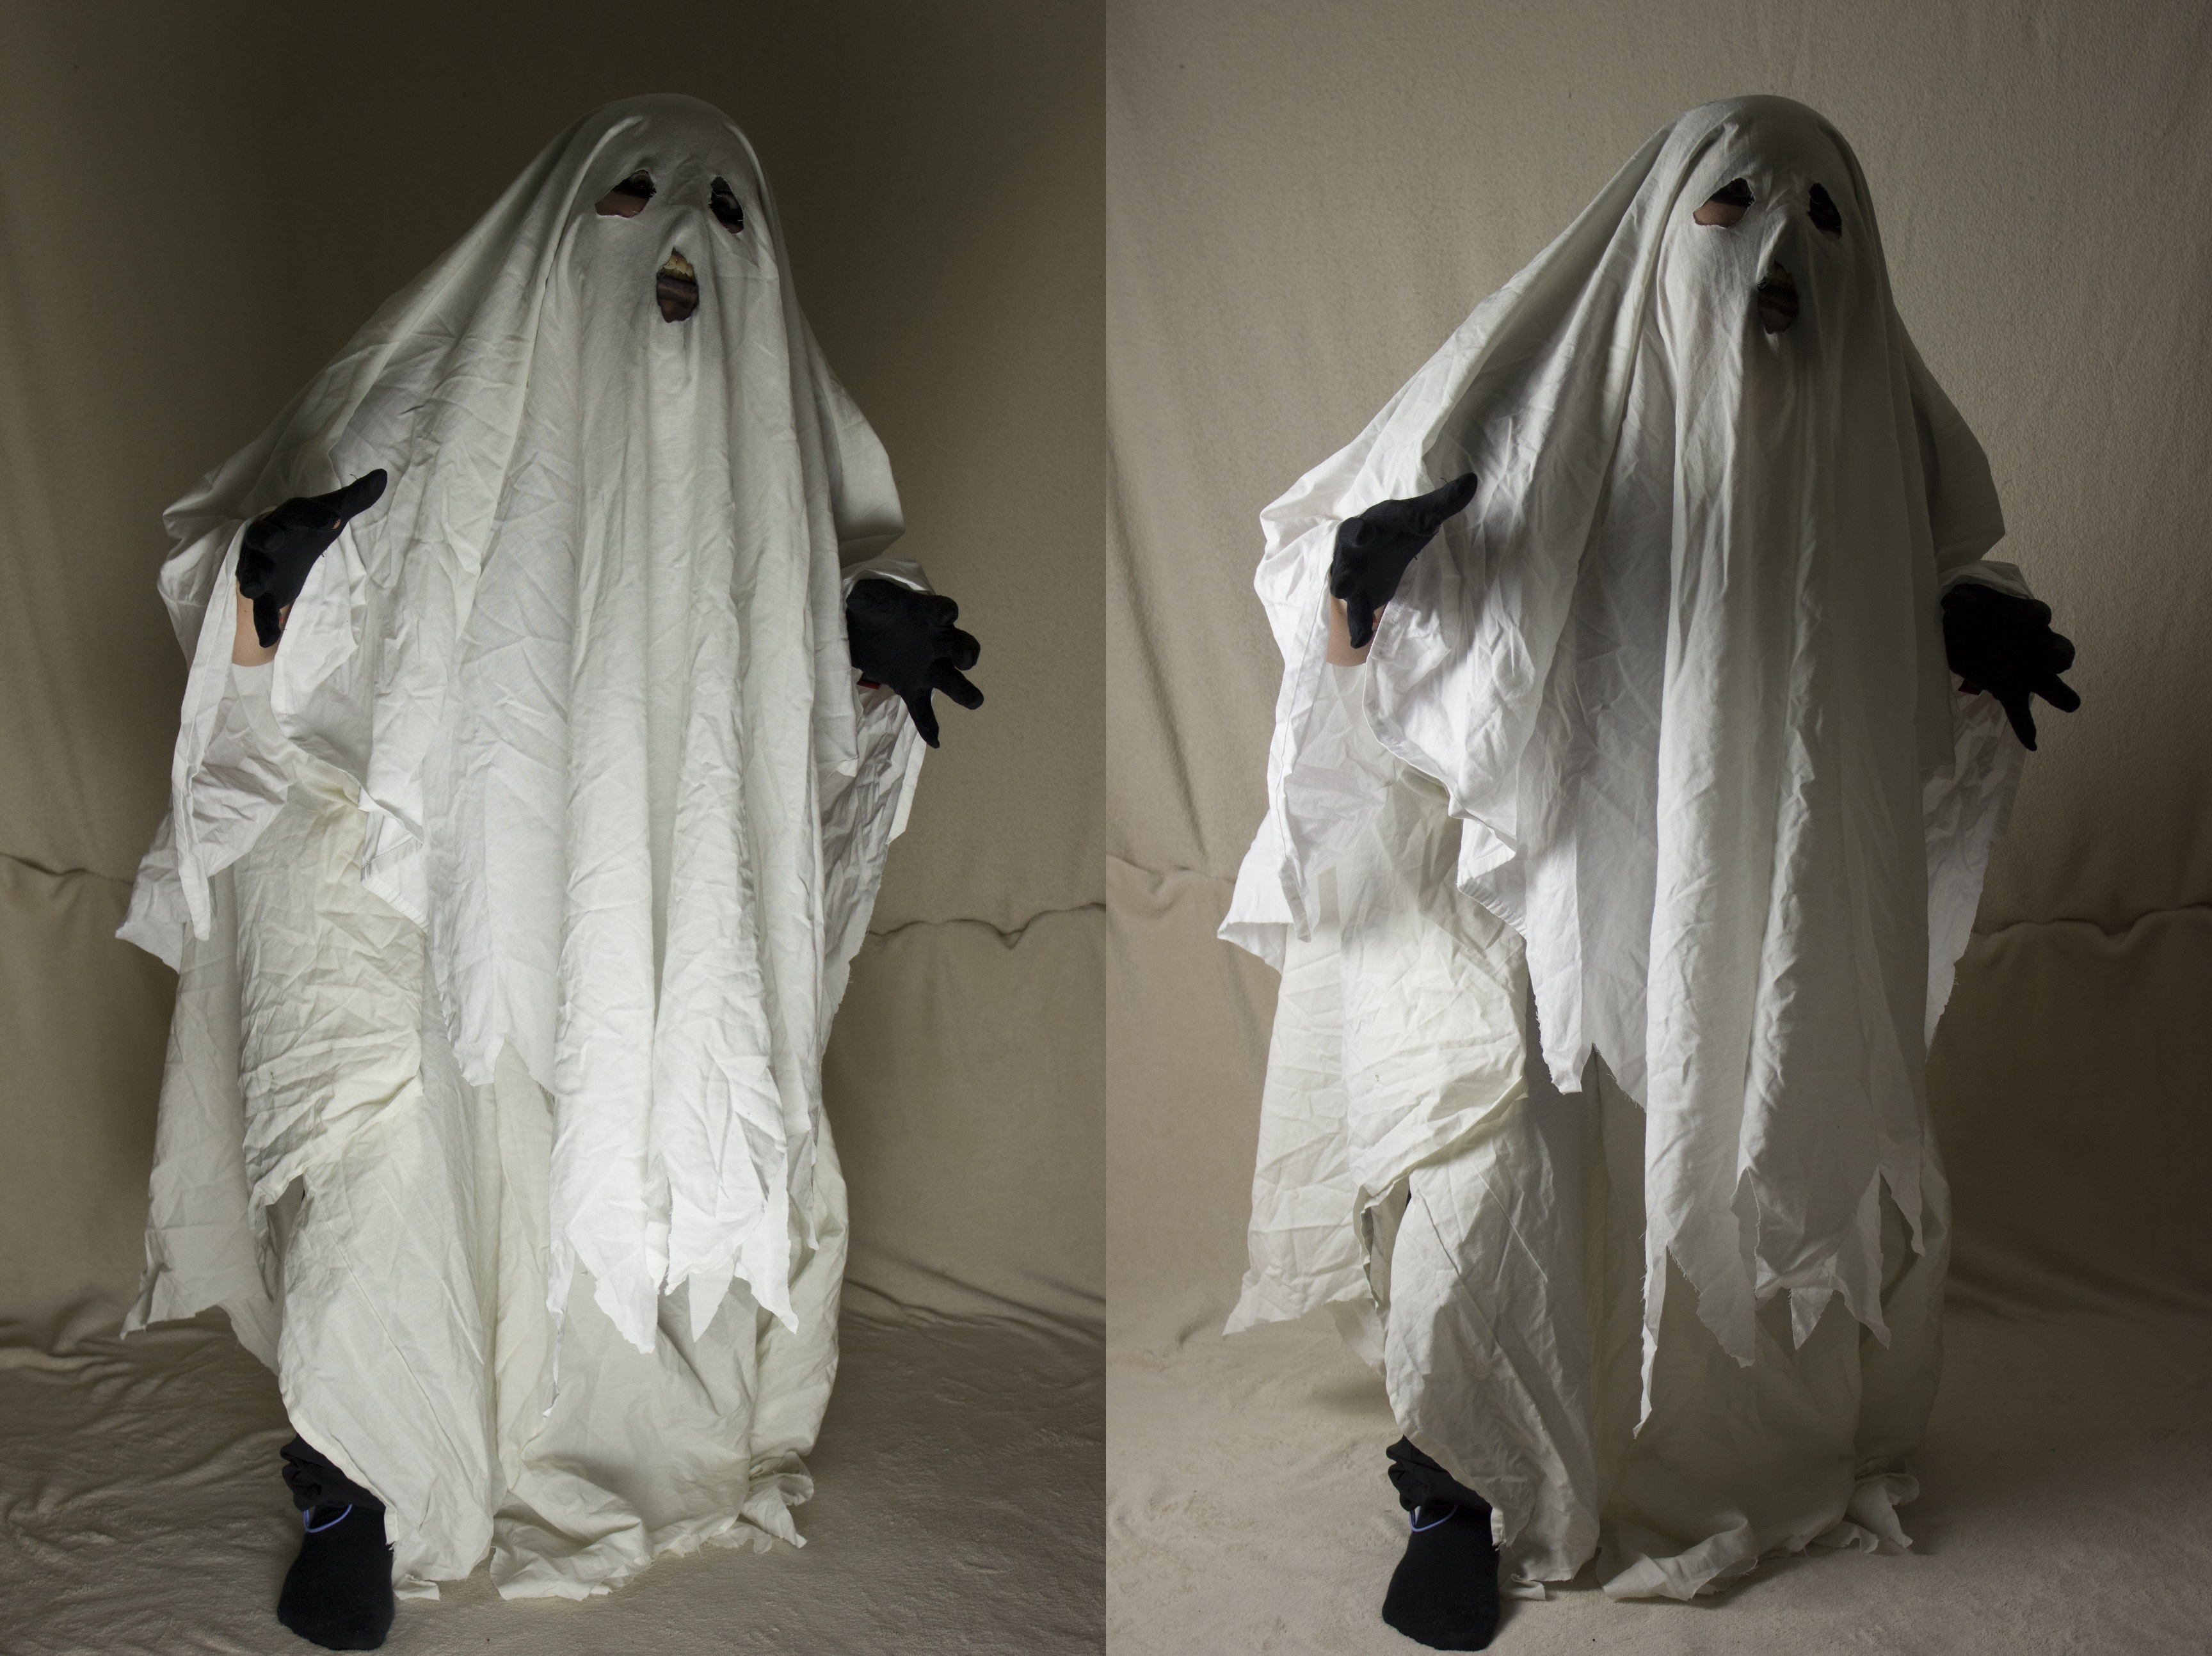 bed sheet ghost Didnt try my hardest download skin now the minecraft skin, bed sheet/ghost costume [contest entry], was posted by stratocaster720.